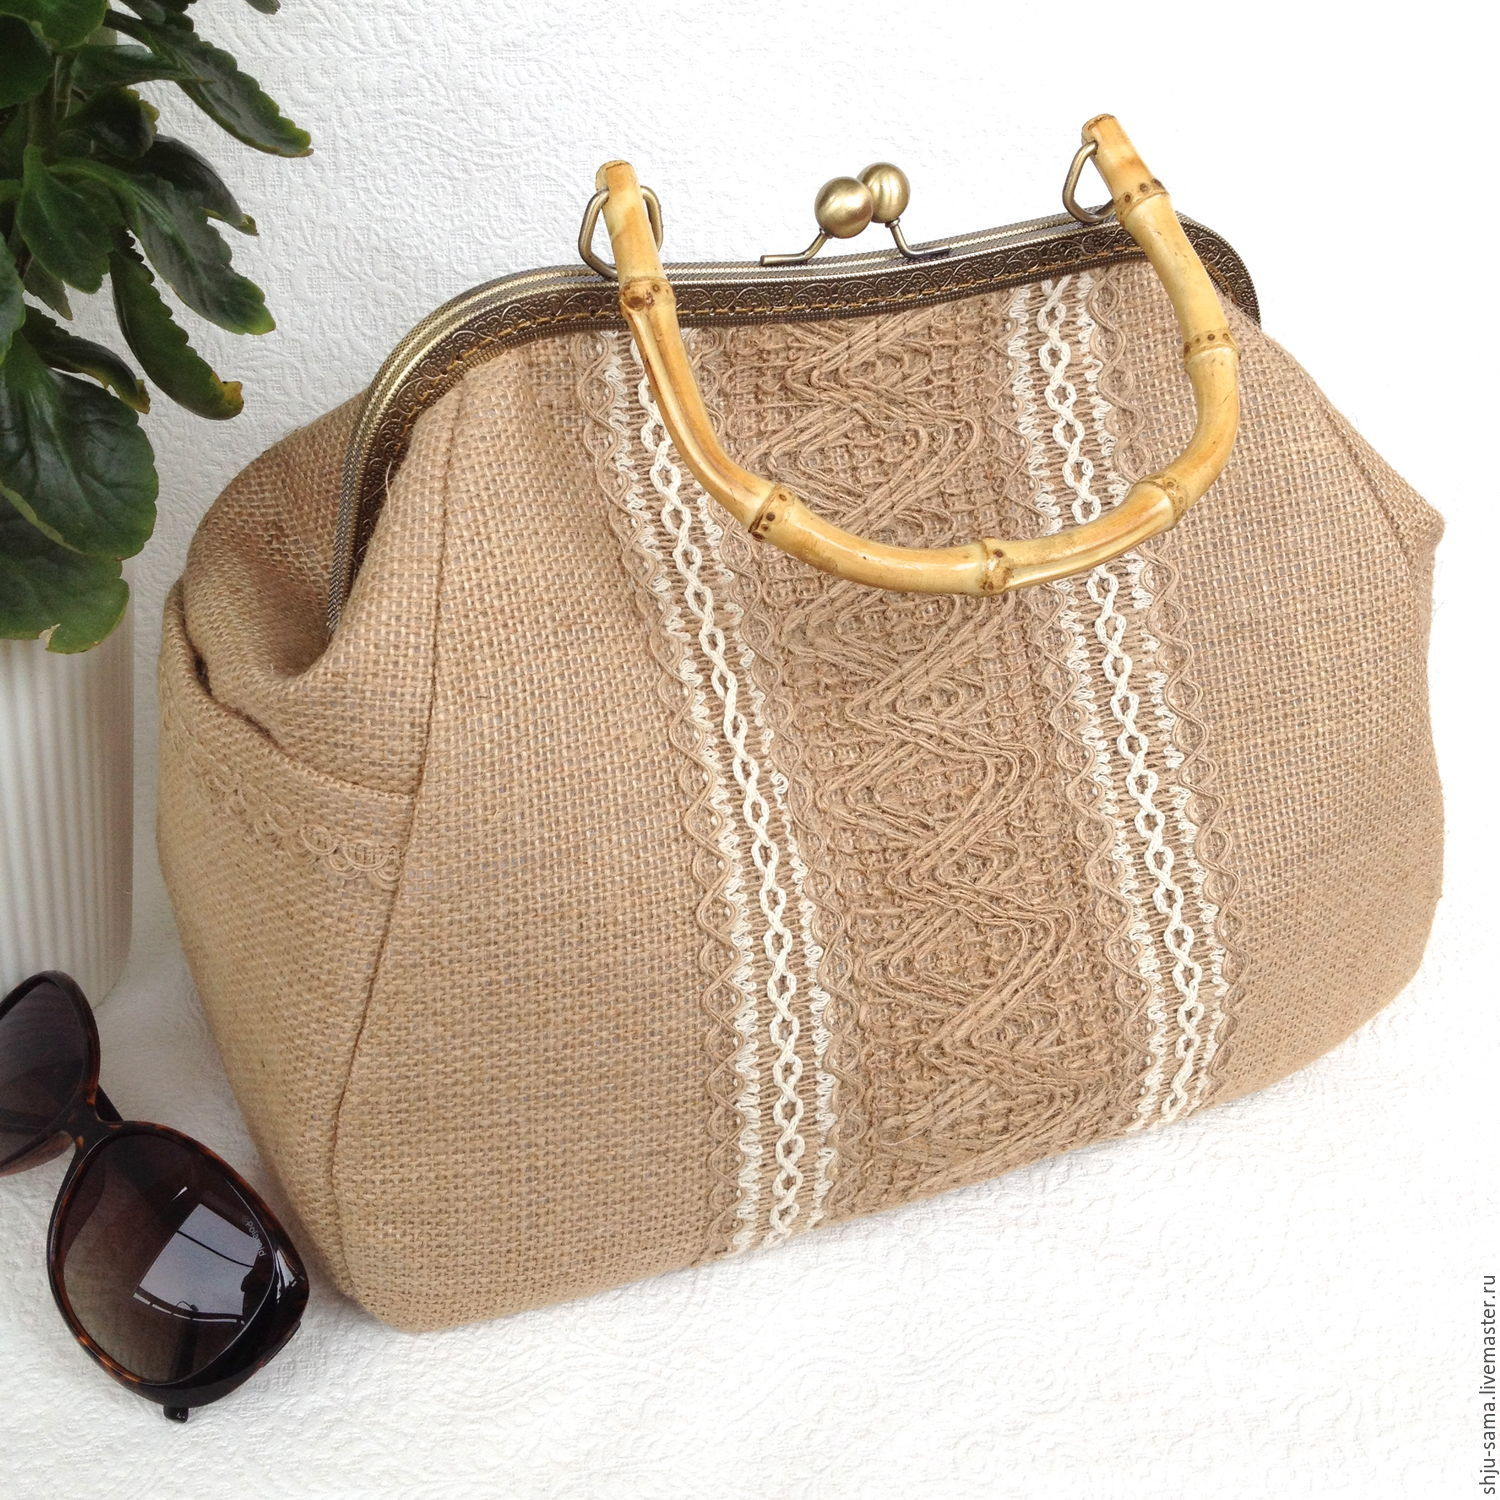 2d980022ad653 Handmade Leather Handbags Cape Town | Stanford Center for ...